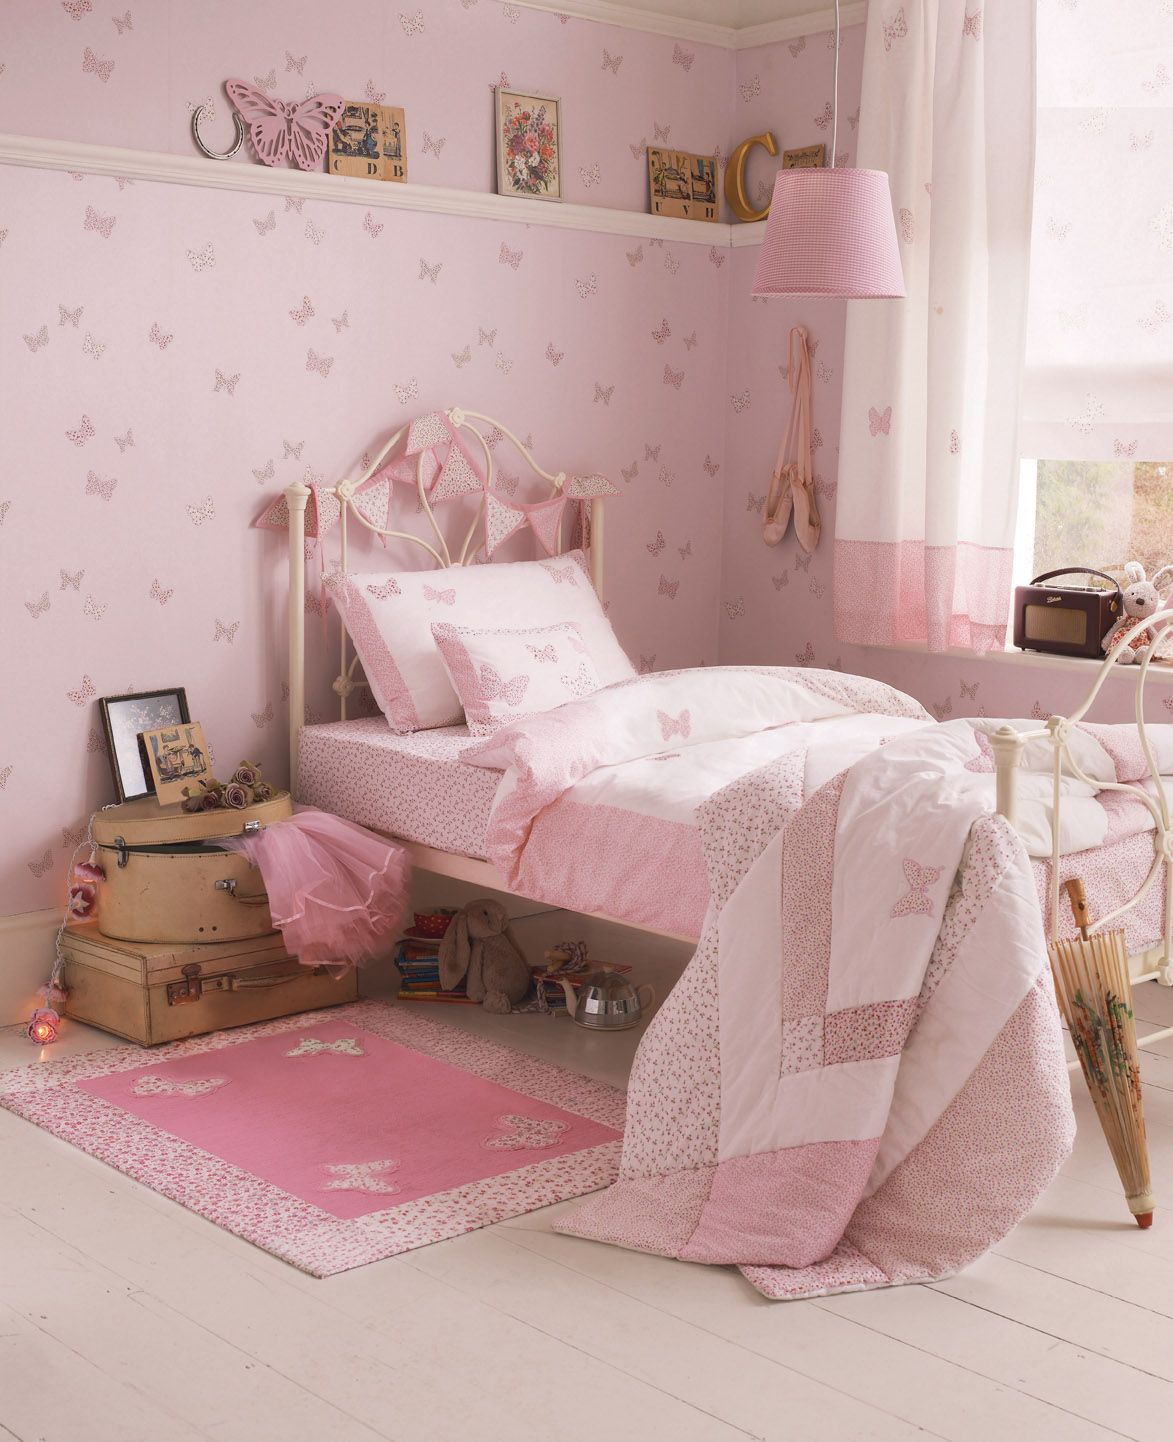 All laura ashley wallpaper off this month including this print